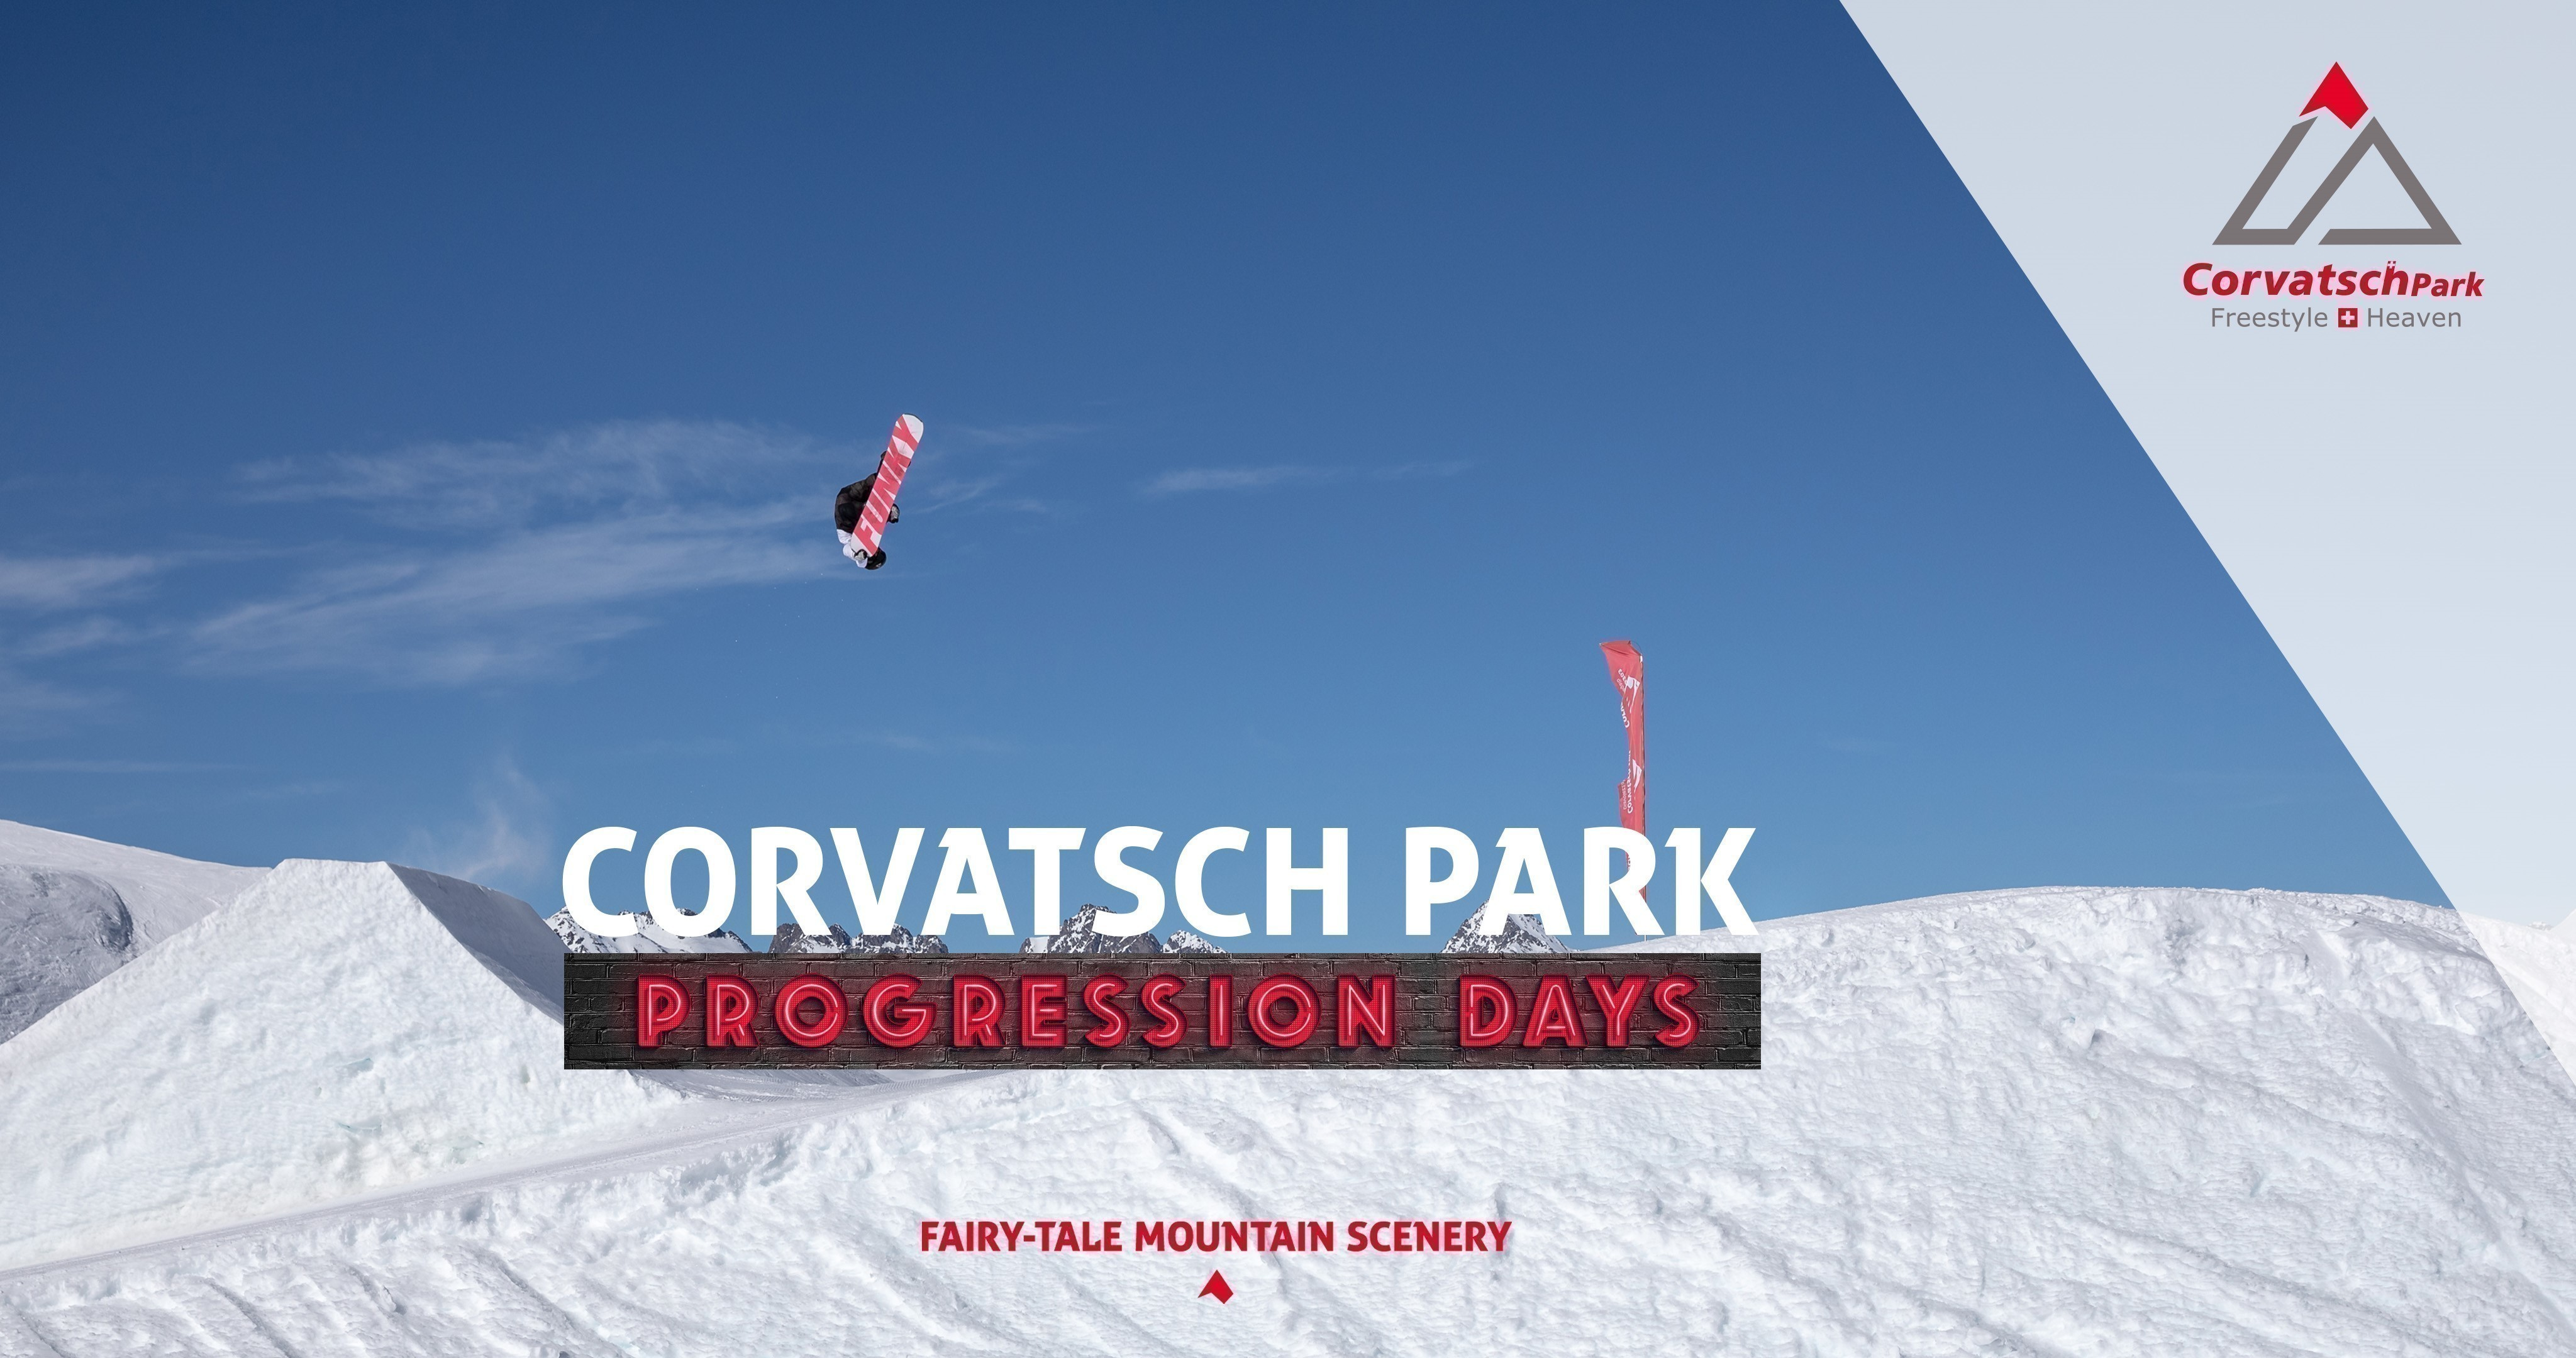 Corvatsch Park Progression Days